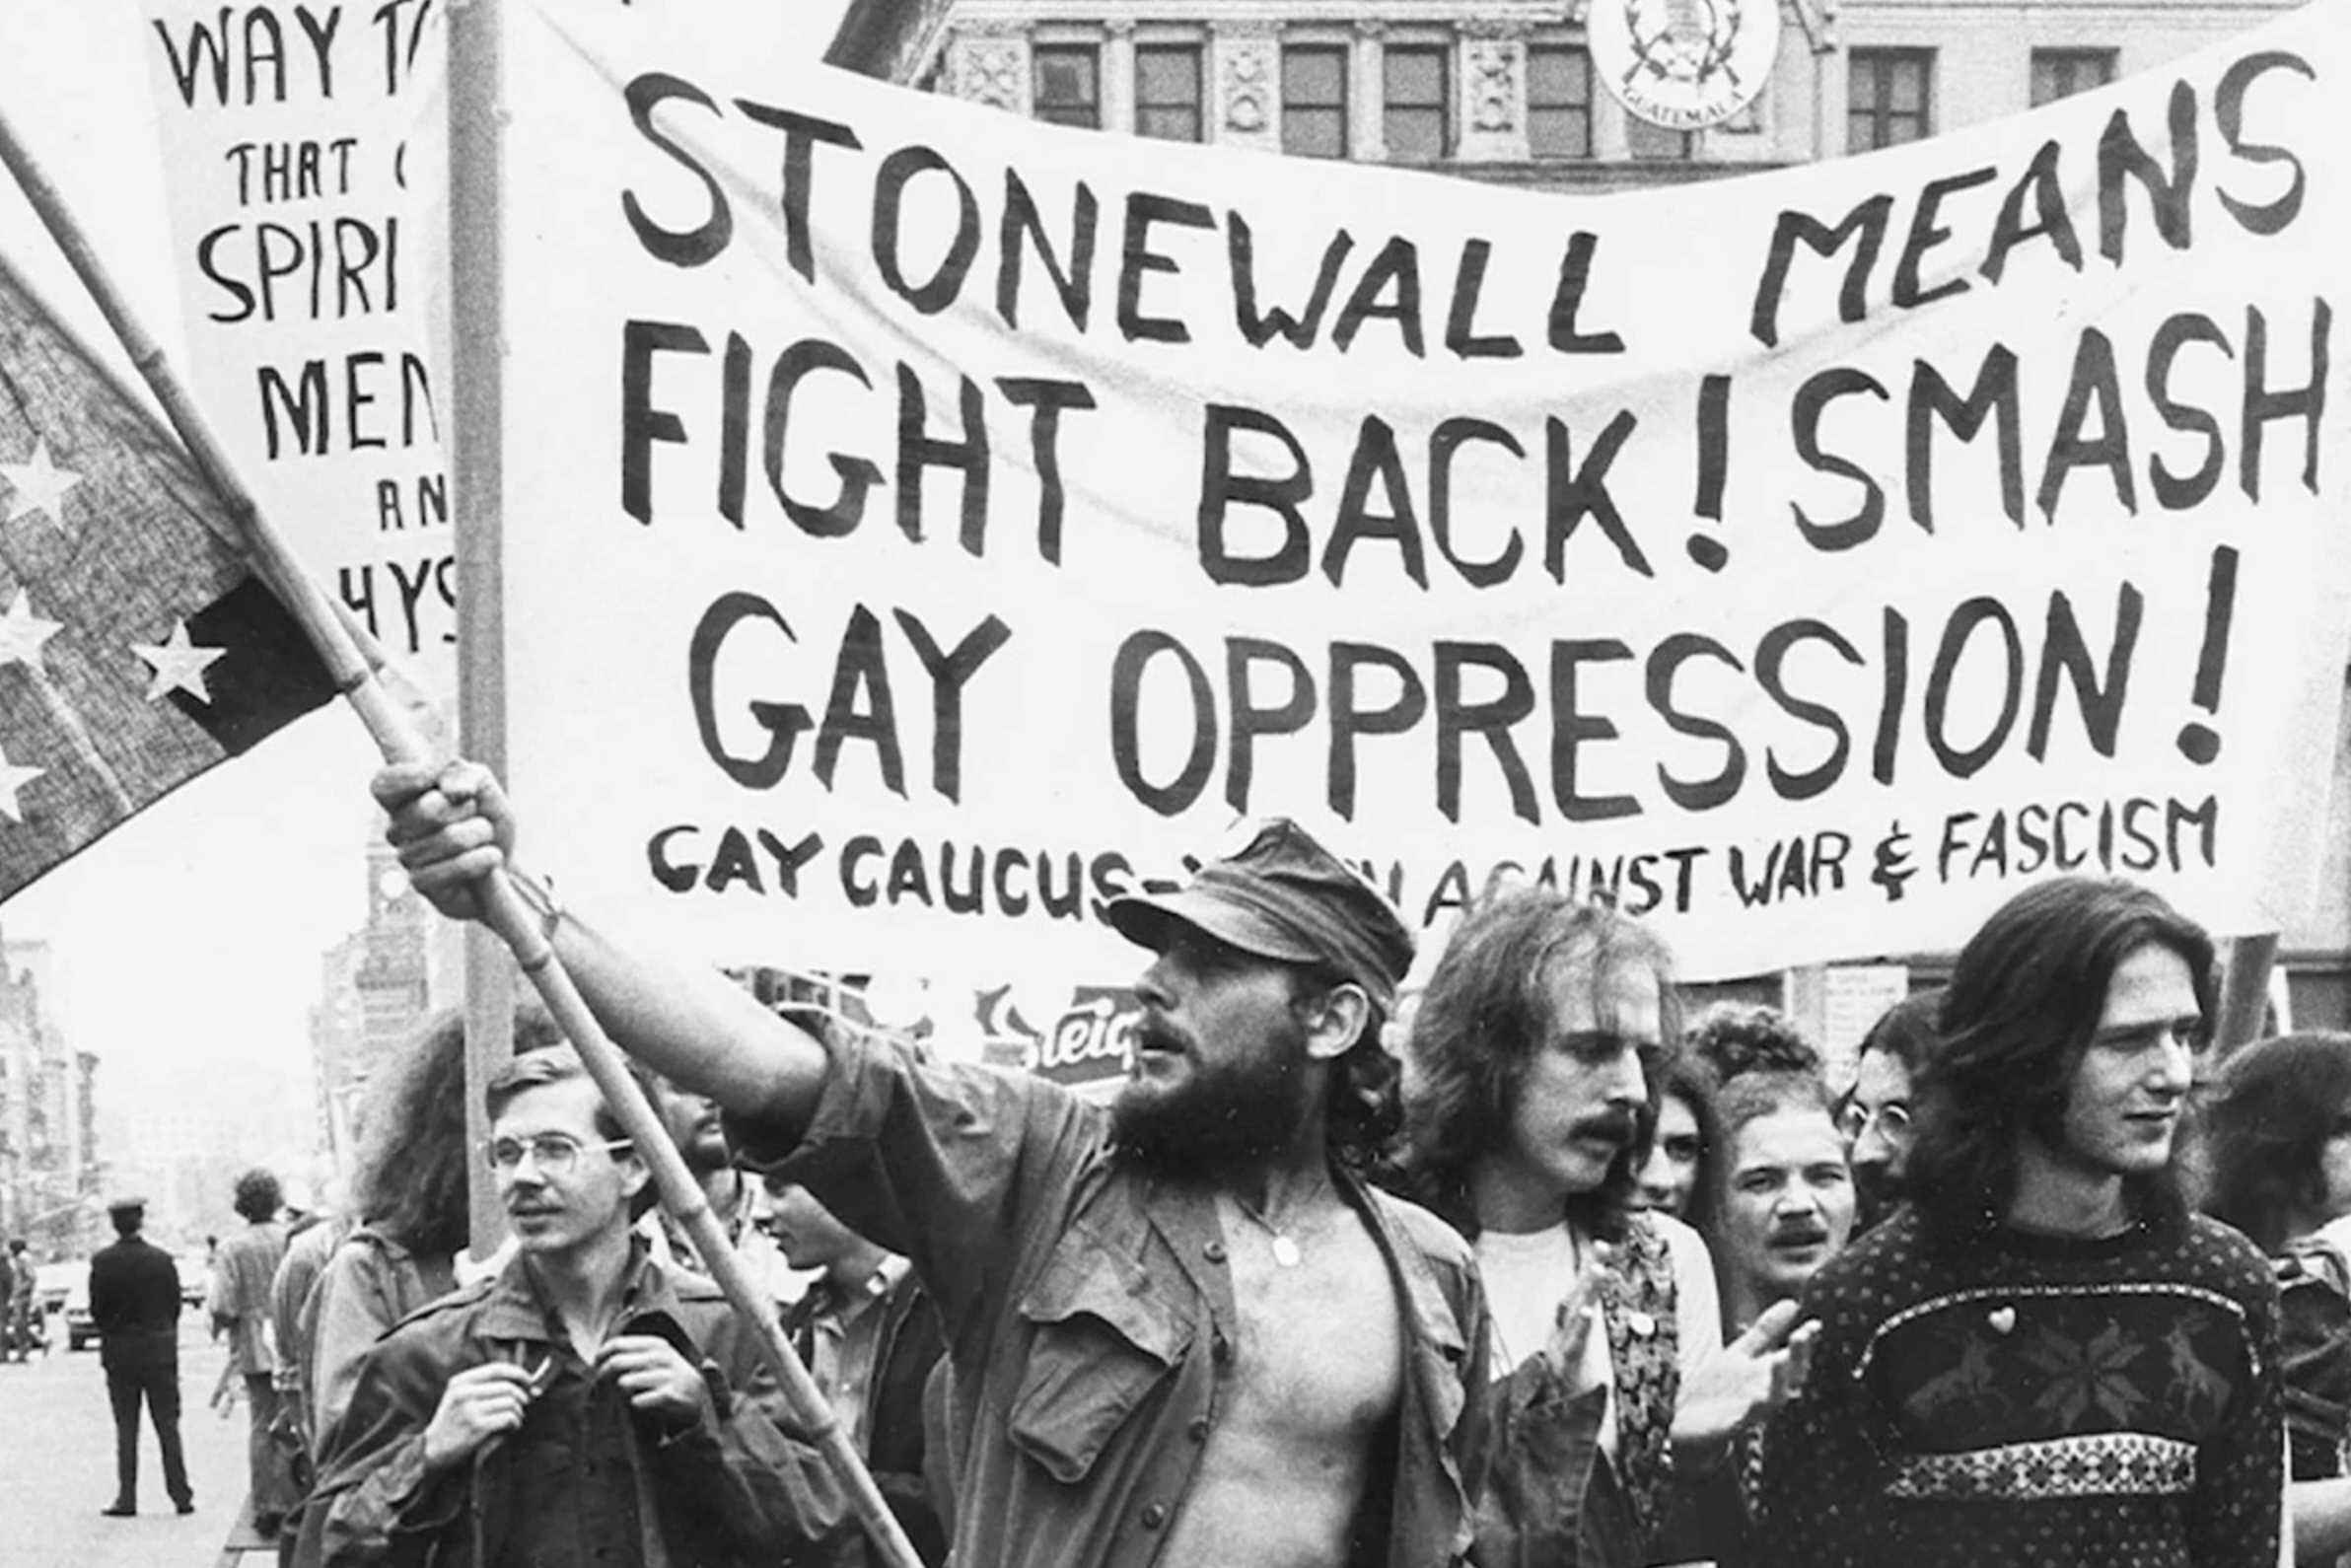 THEN: Stonewall Riots in 1969 kickstarted the first ever Pride event